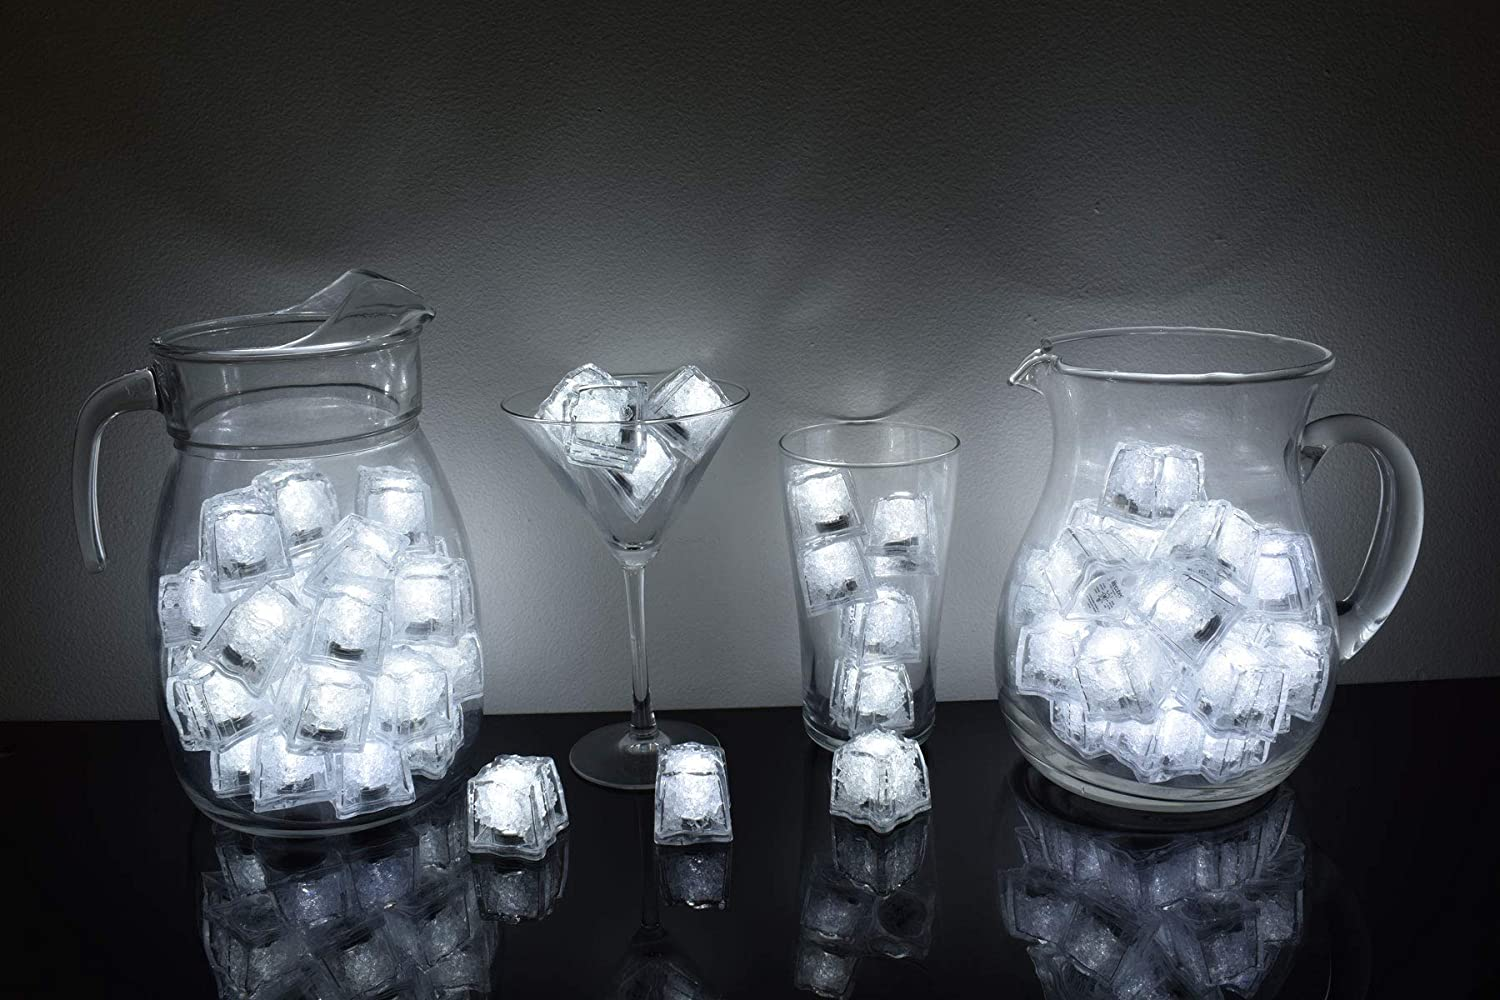 Litecubes Brand 3 Mode White Light Cubes up Ice Easy-to-use LED 67% OFF of fixed price 72